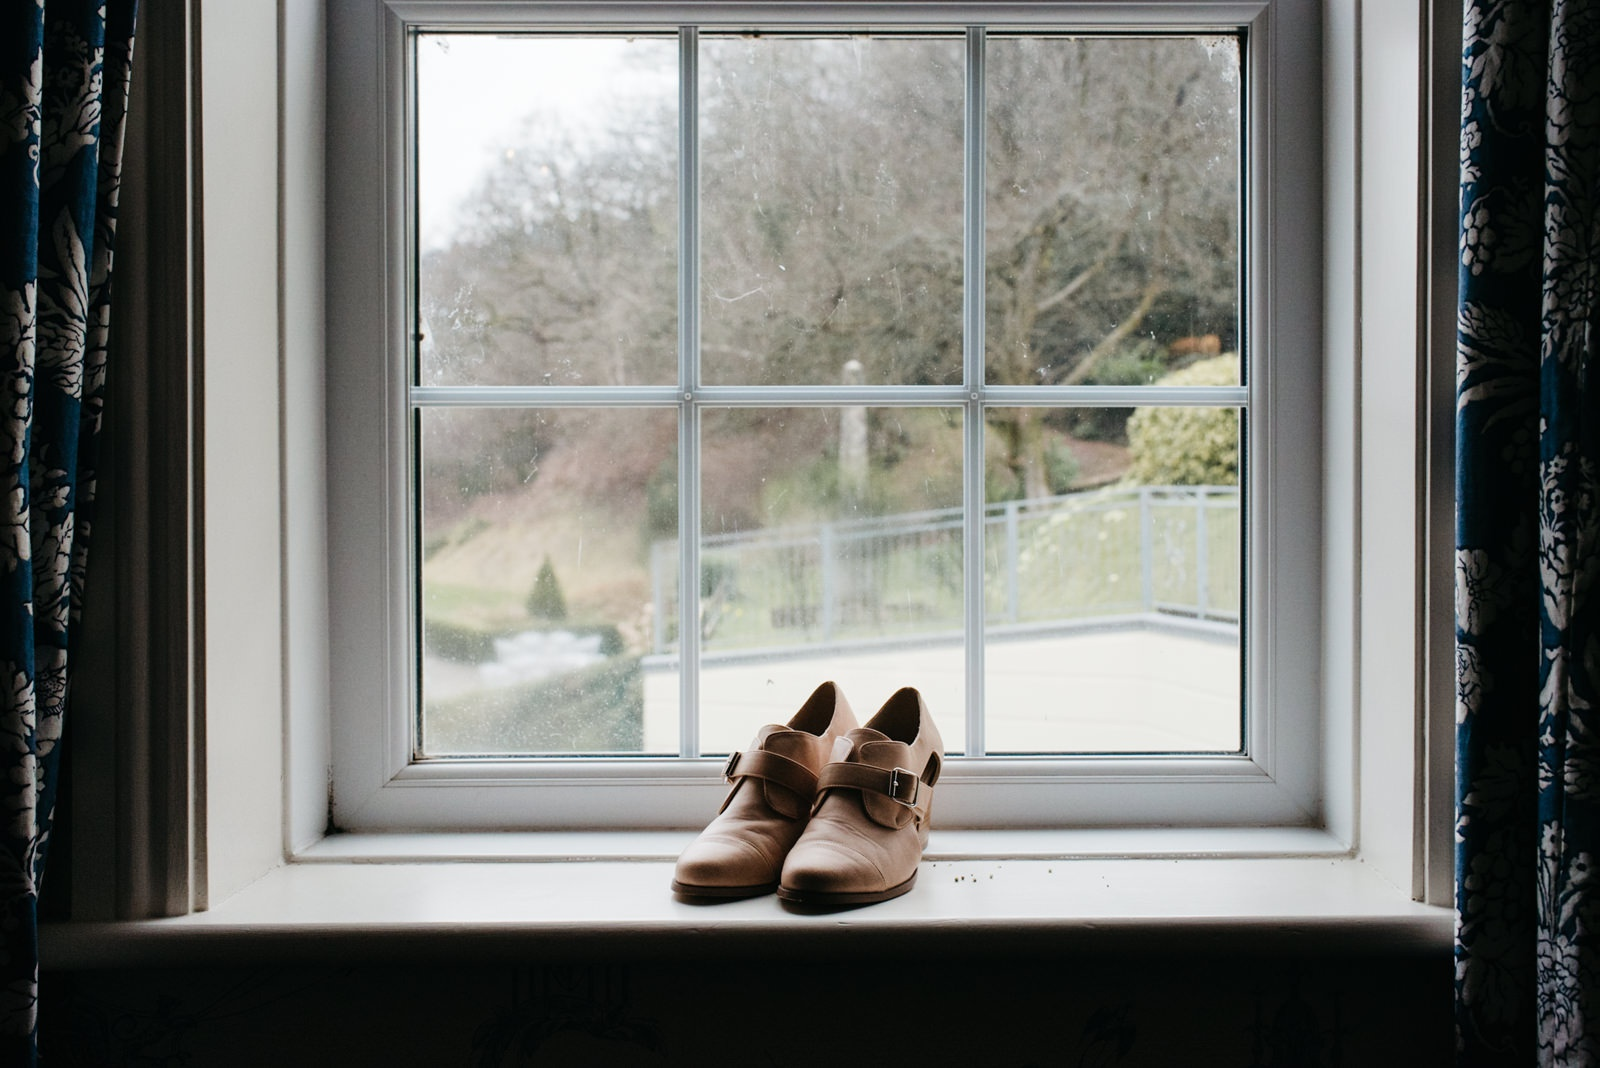 Brides alternative asos shoes on windowsill of New House Hotel, Lisvane Cardiff